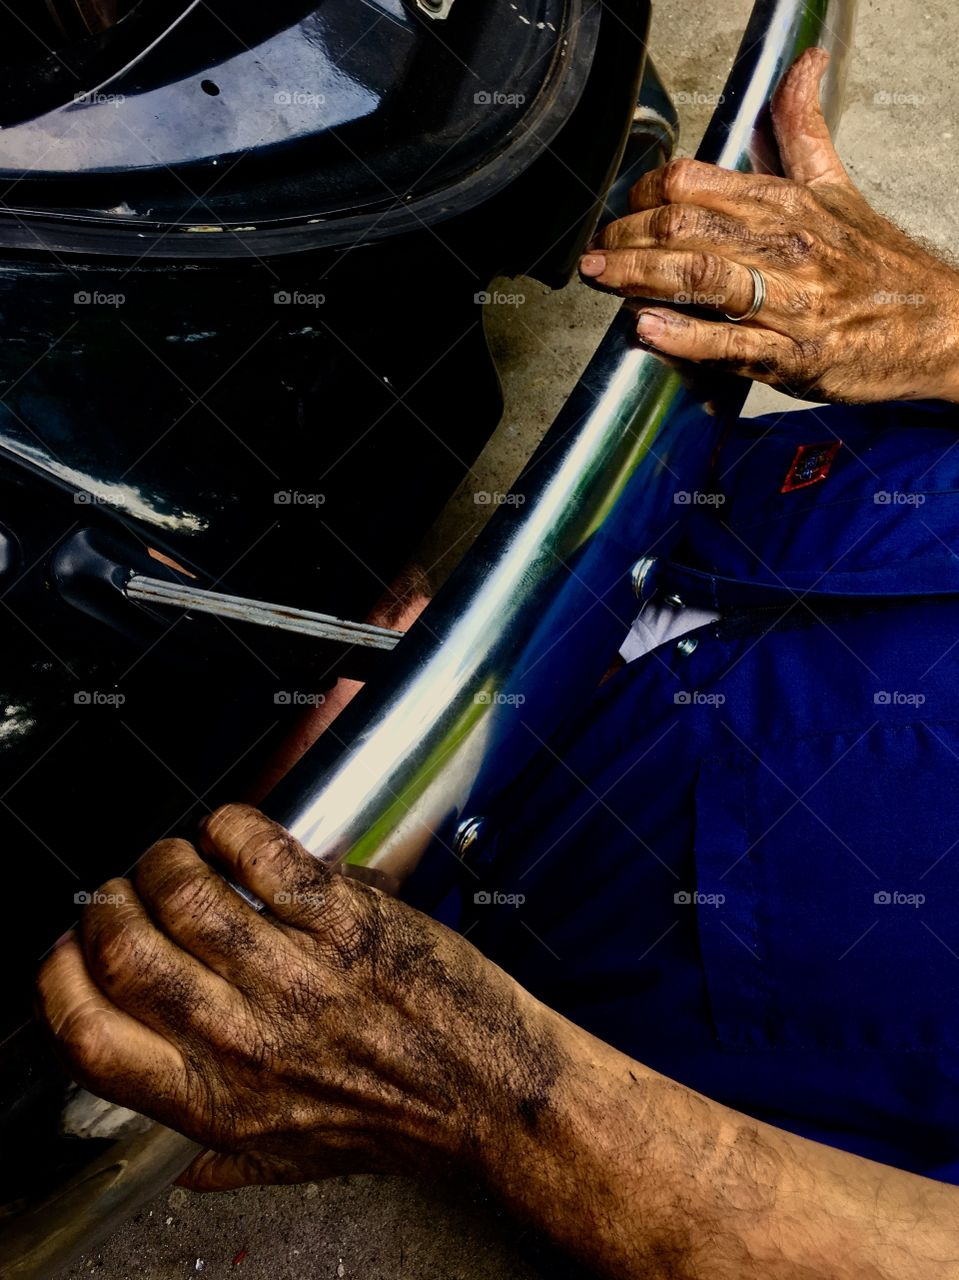 A person repairing a vehicle